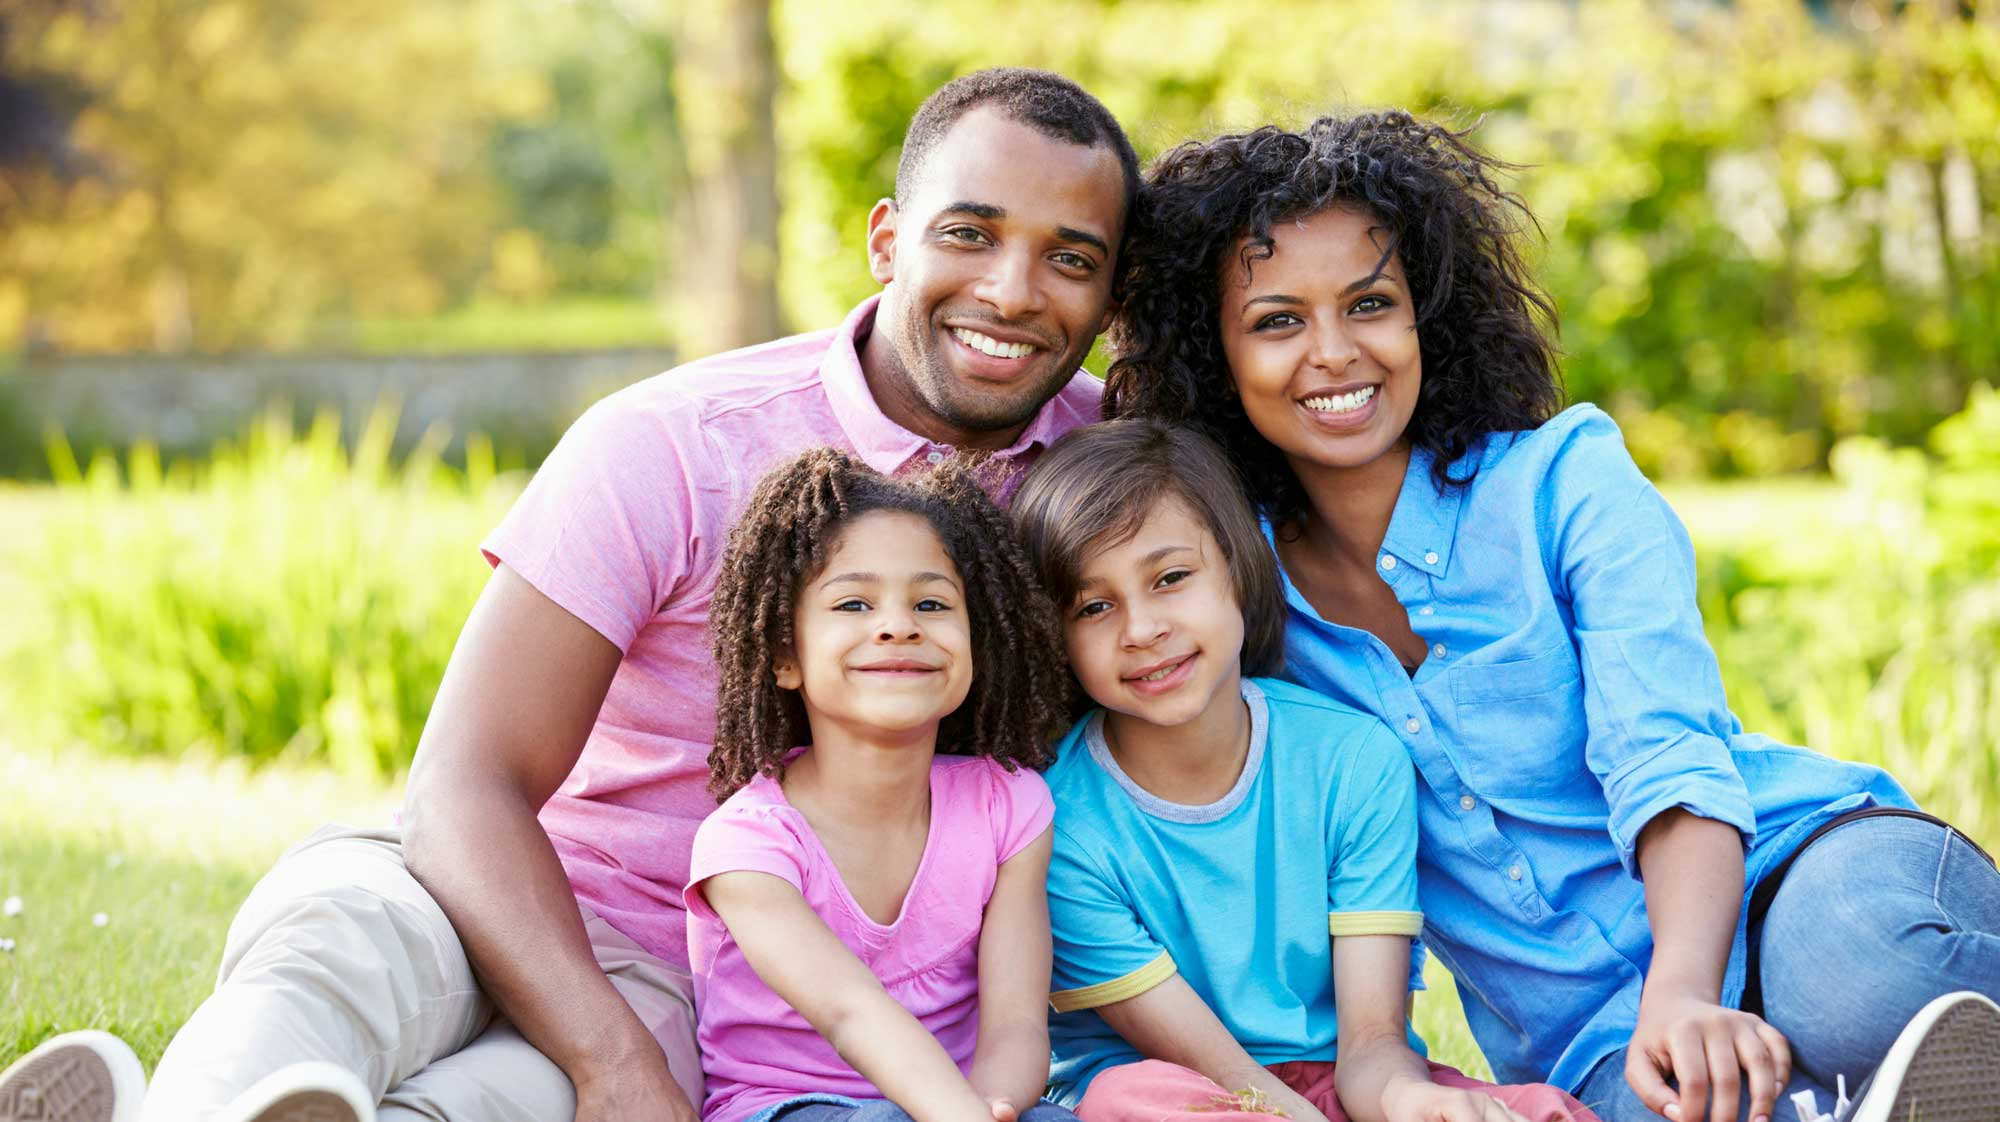 family dentist in henderson, nc - Roberson Family Dentistry